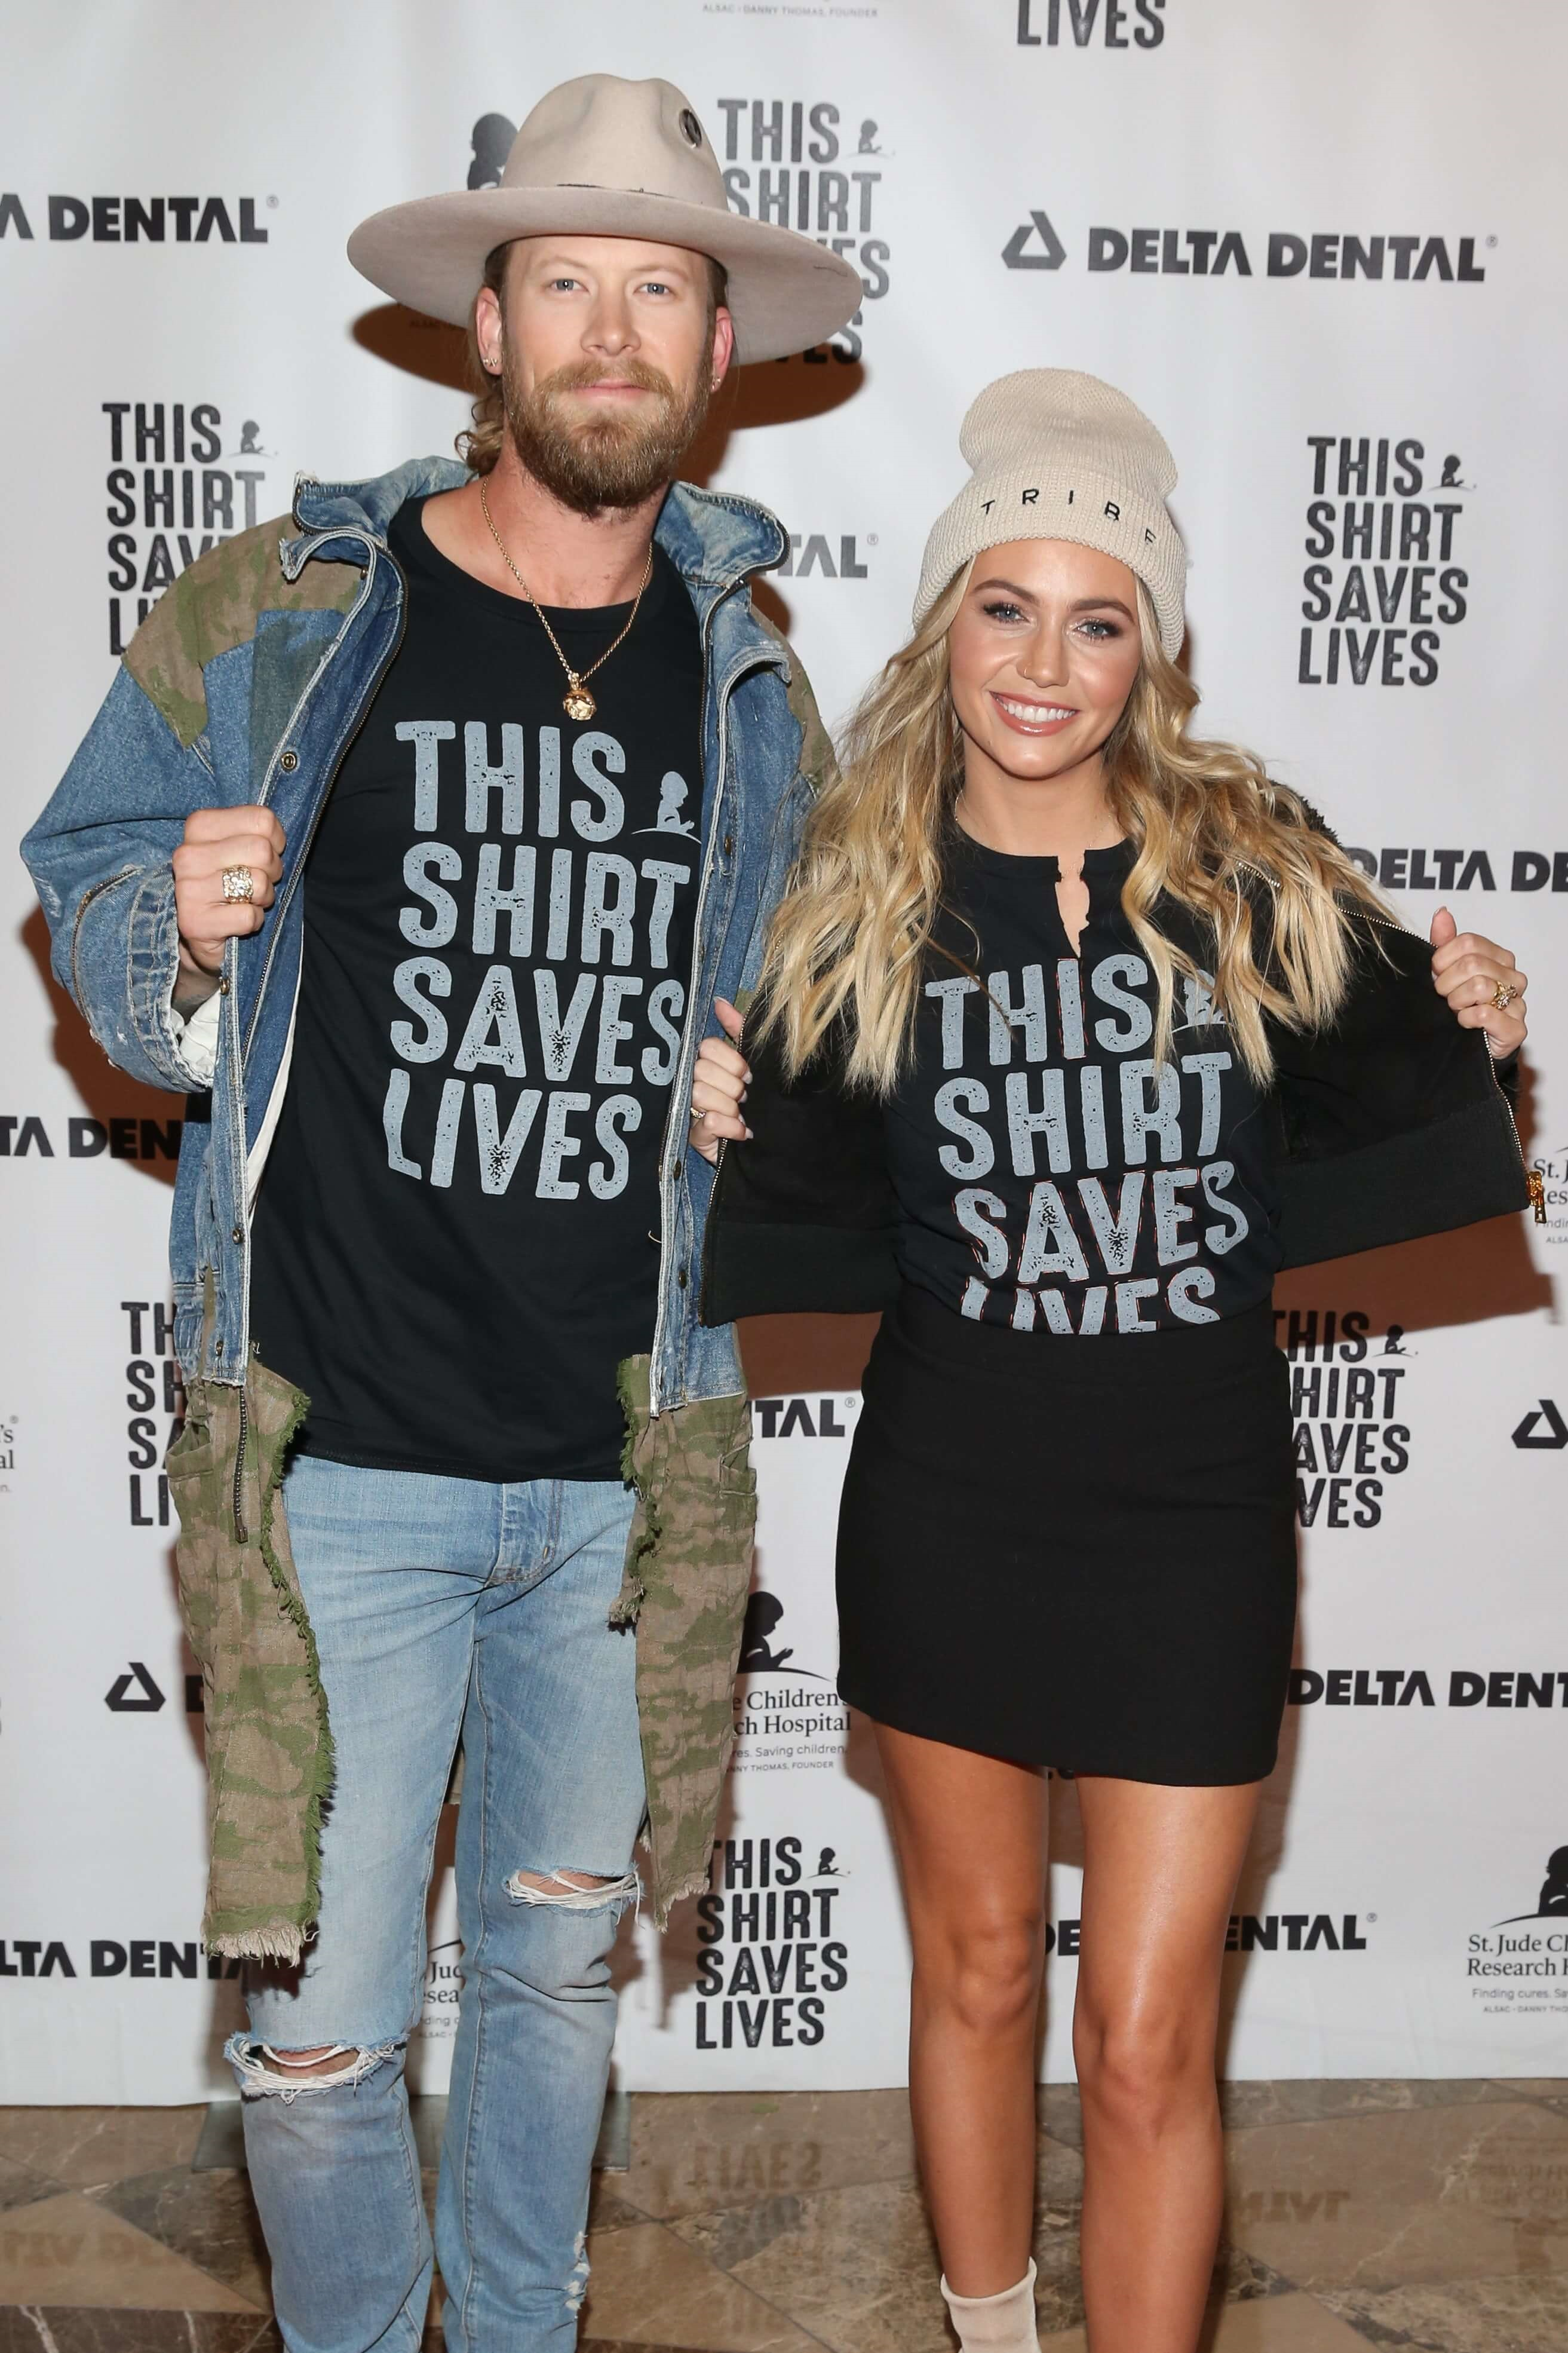 Florida Georgia Line's Brian Kelley and his wife Brittney Cole Kelley at the #ThisShirtSavesLives event.